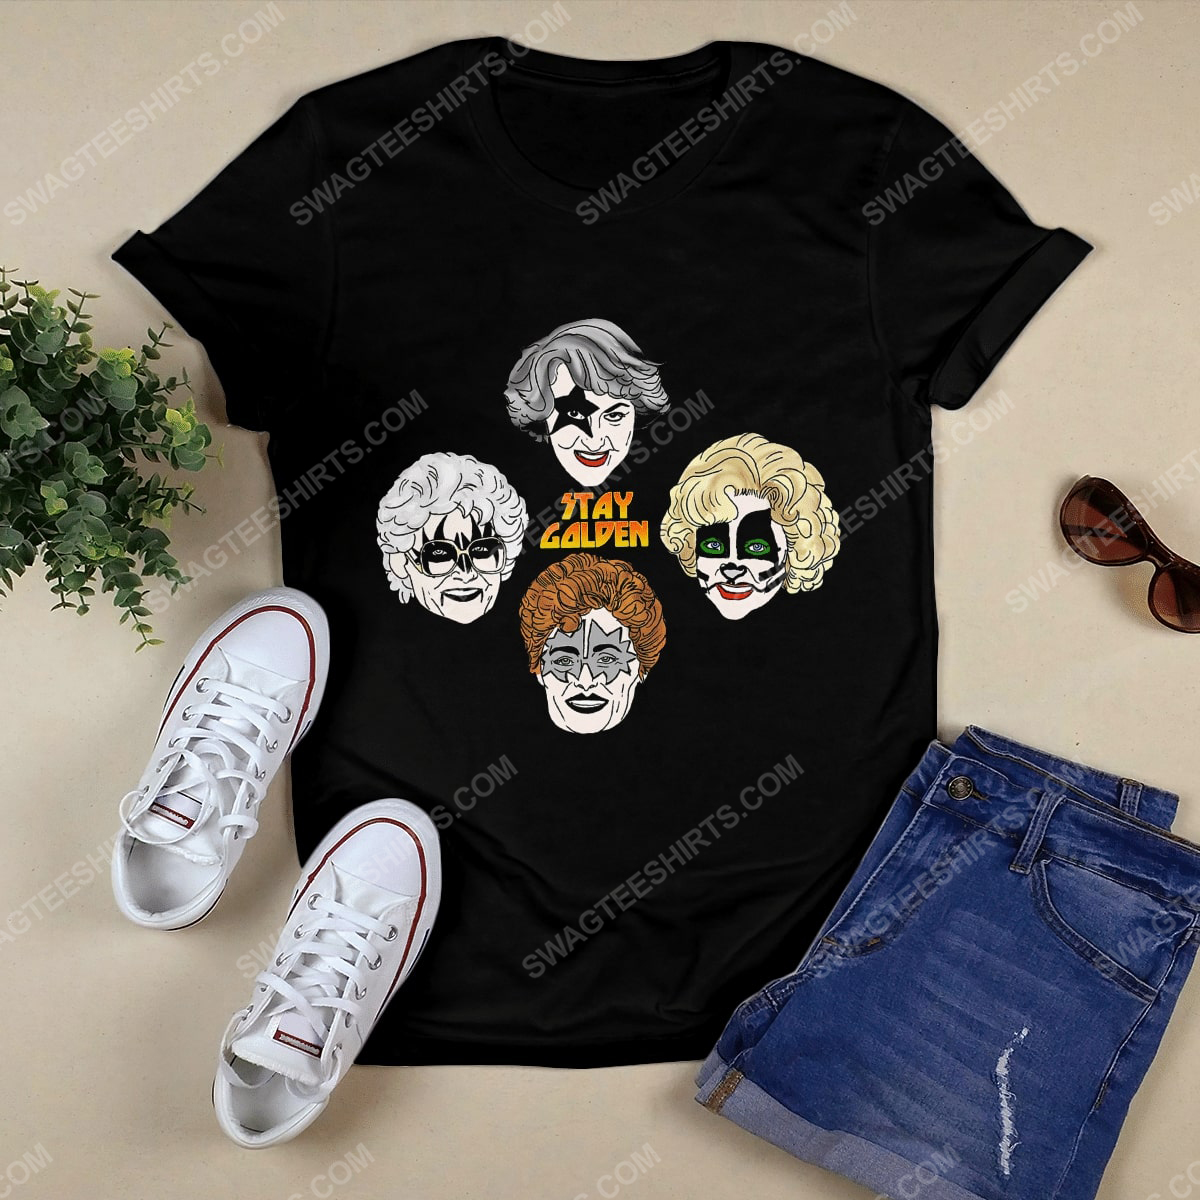 Kiss and the golden girls stay golden tshirt 1